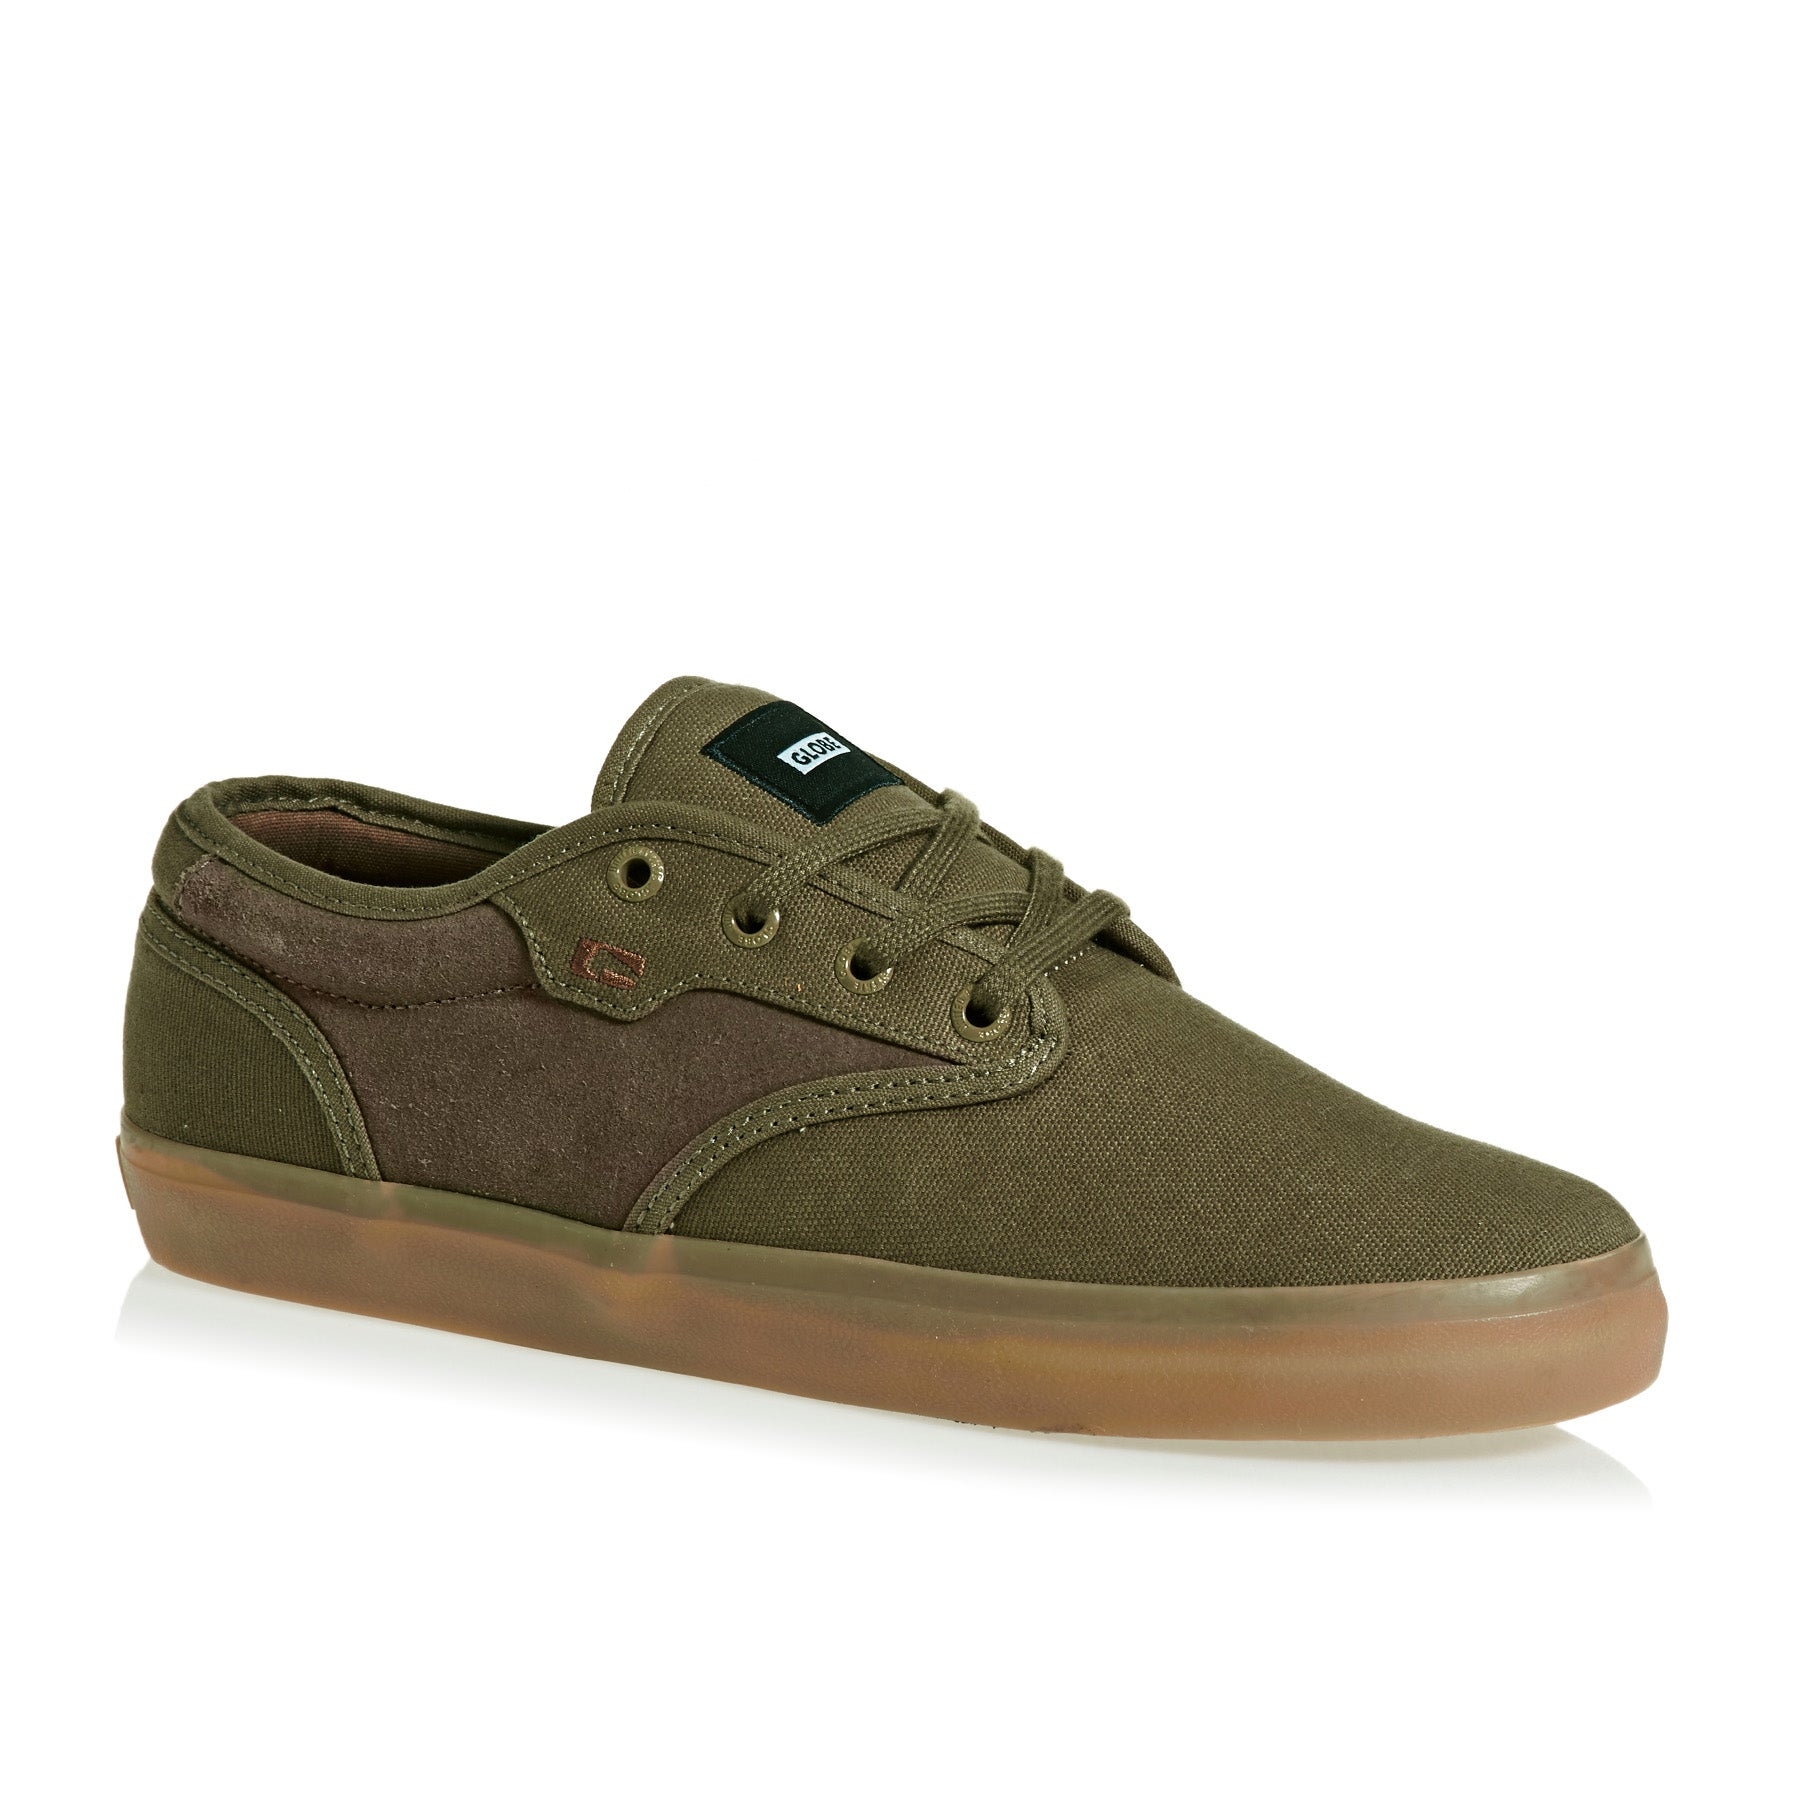 Globe Motley Shoes - Olive Brown/gum